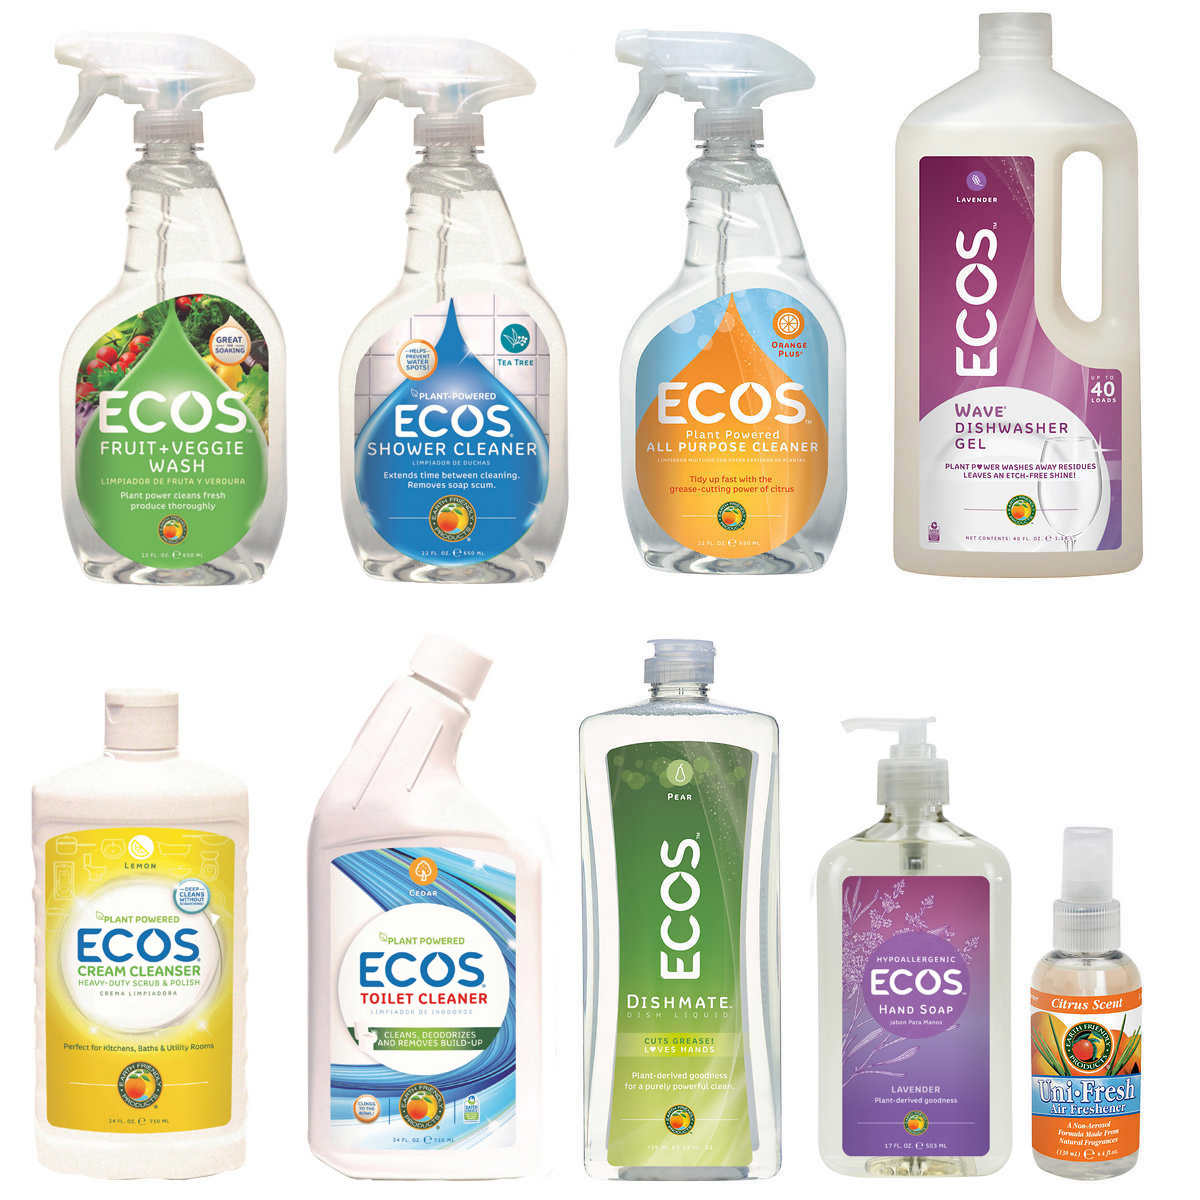 ECOS Earth Friendly Products Kitchen and Bath Cleaning Set | eBay